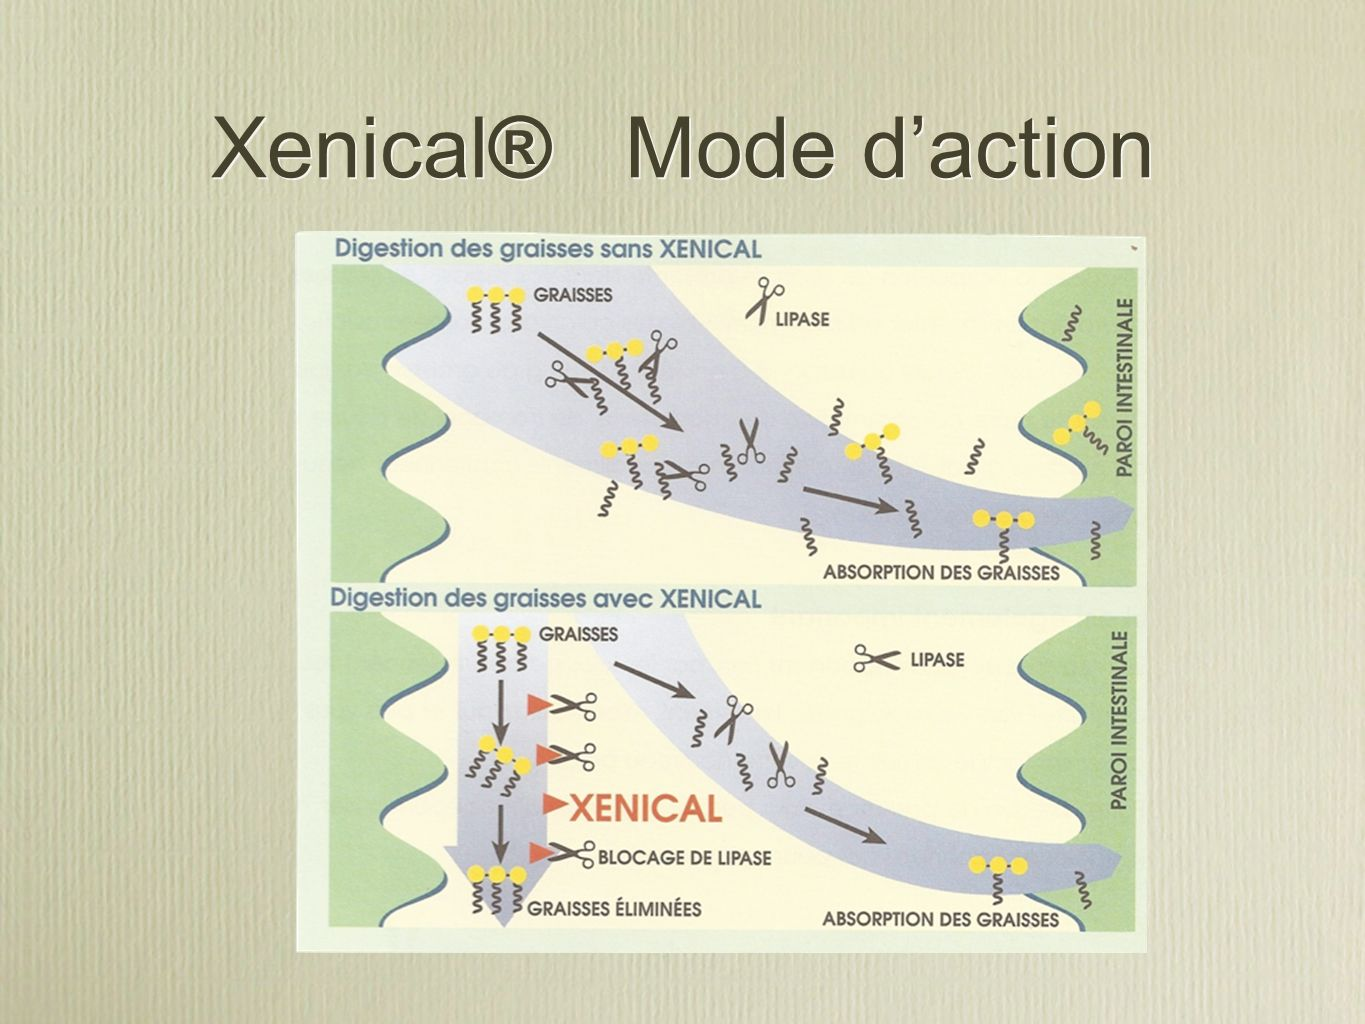 Xenical® Mode d'action